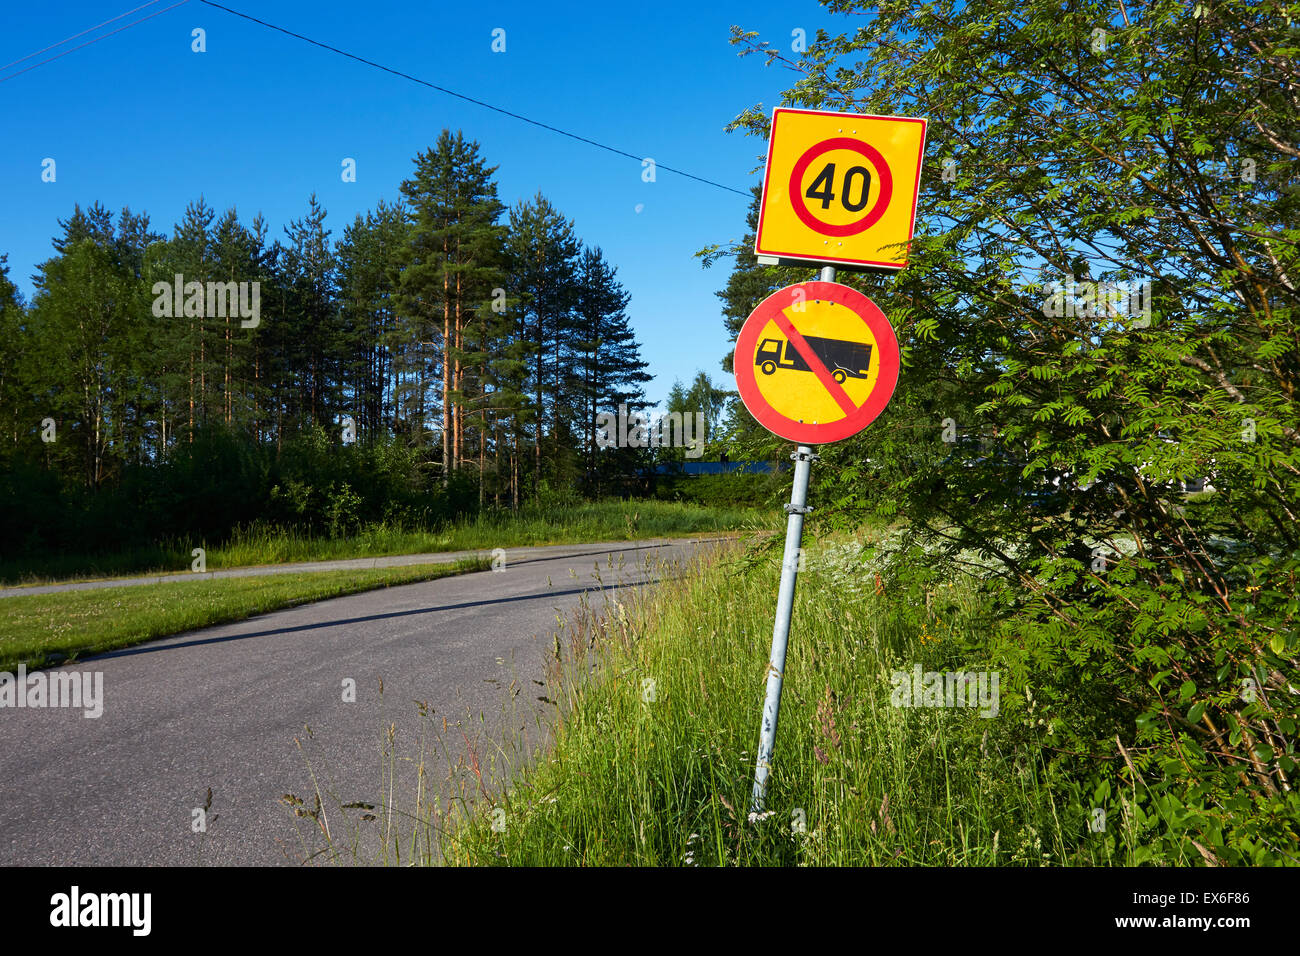 No entry for lorries and vans, traffic sign Finland - Stock Image